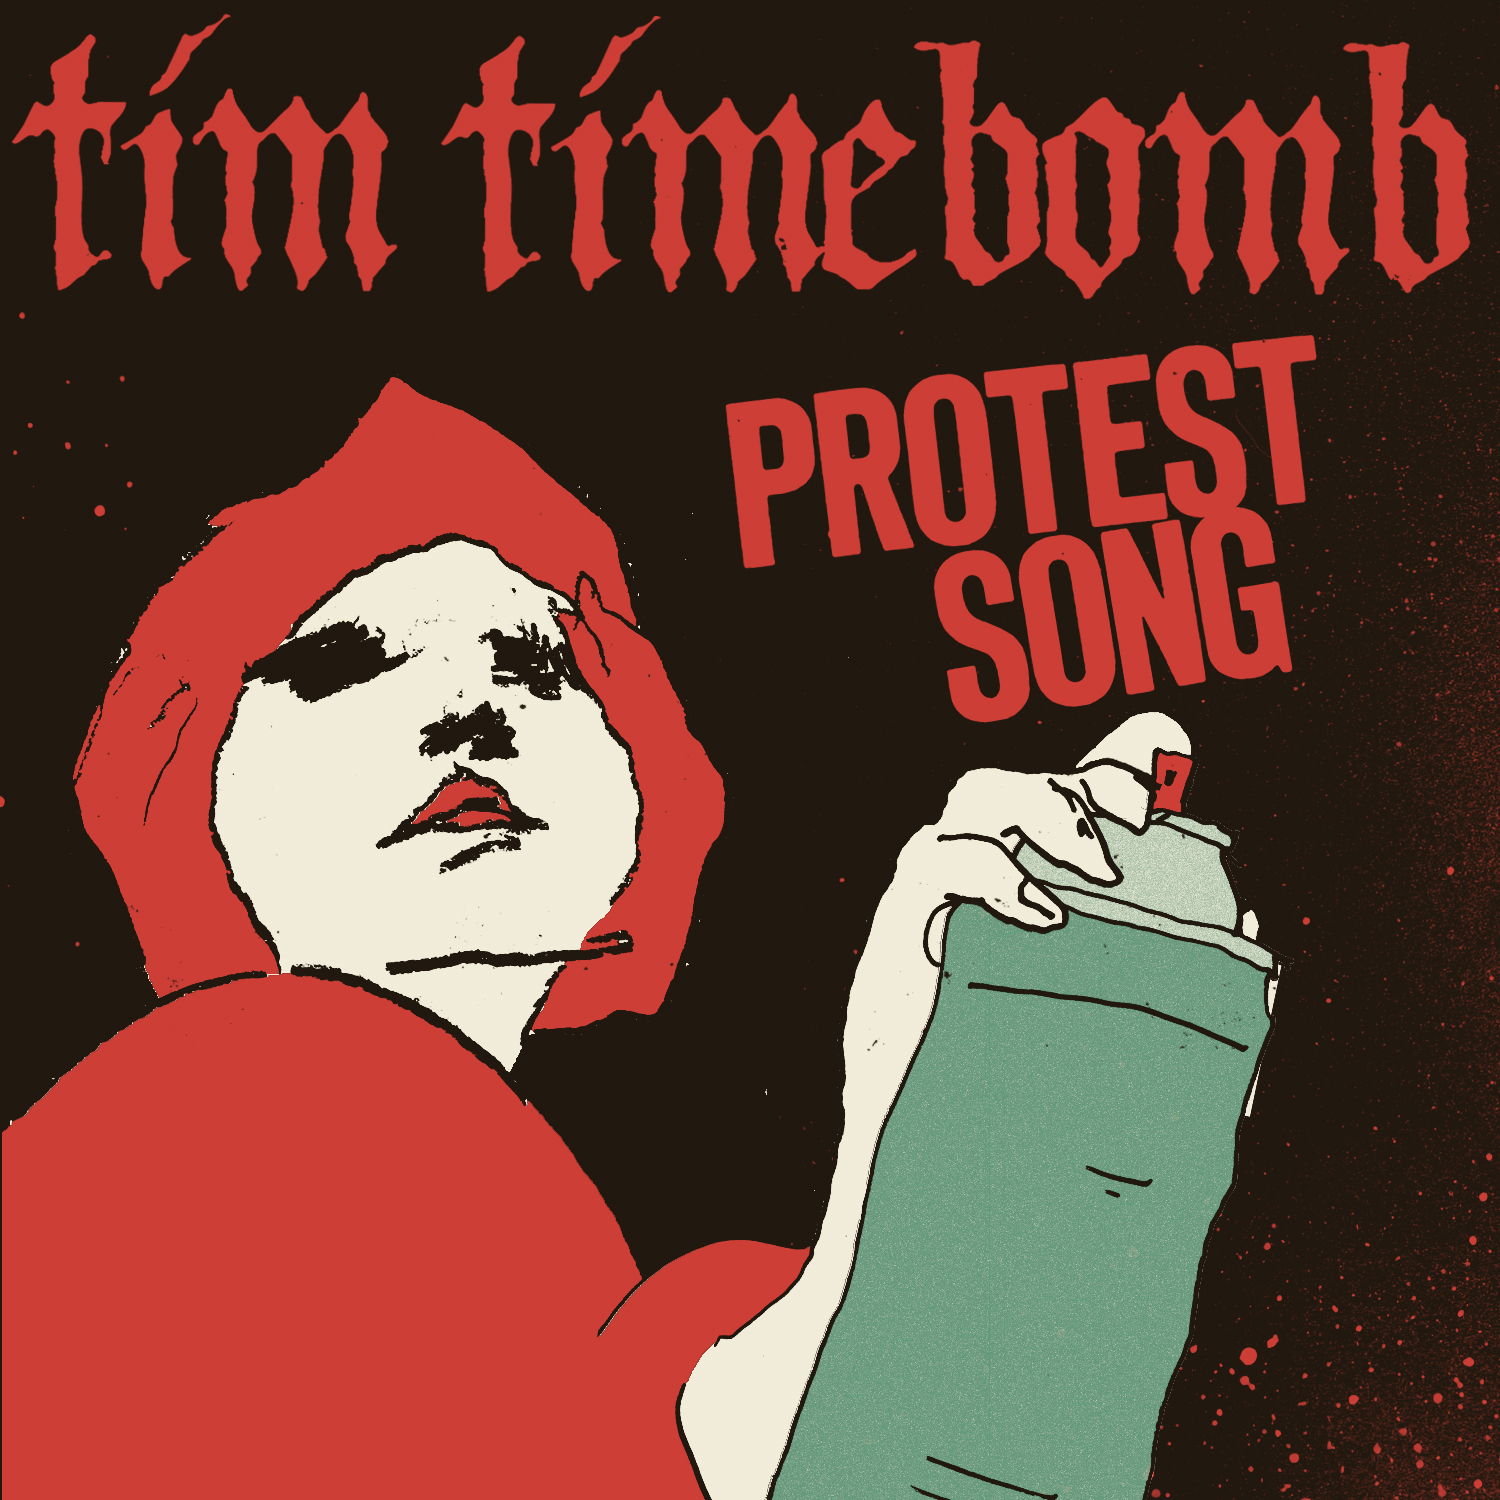 ___PROTEST SONG